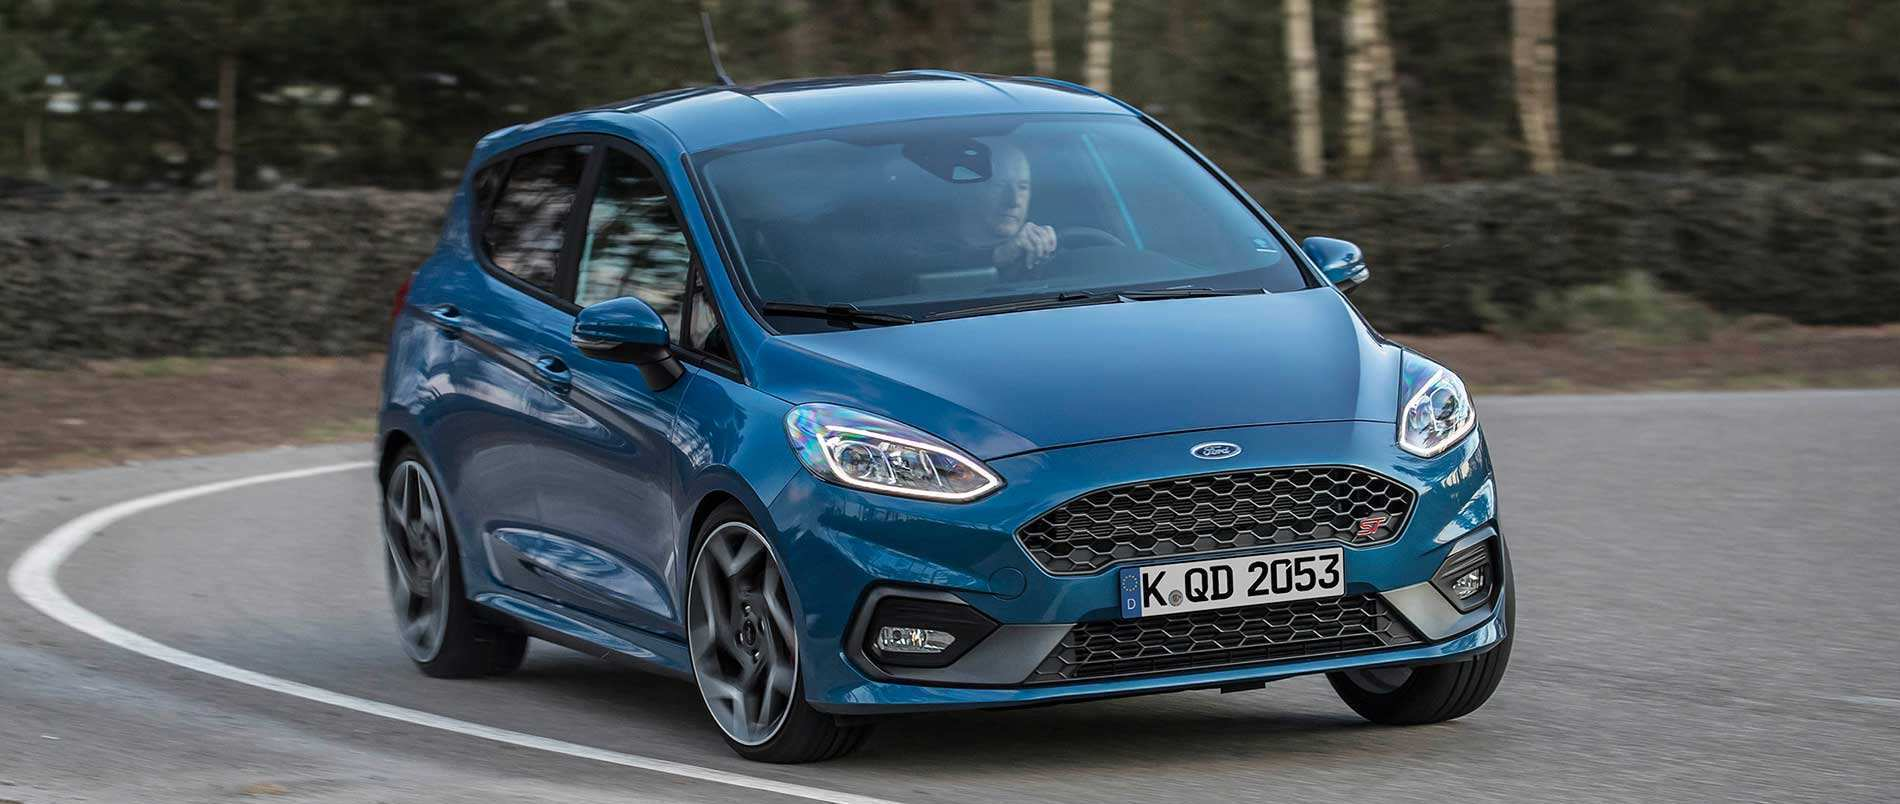 64 New 2019 Fiesta St Interior